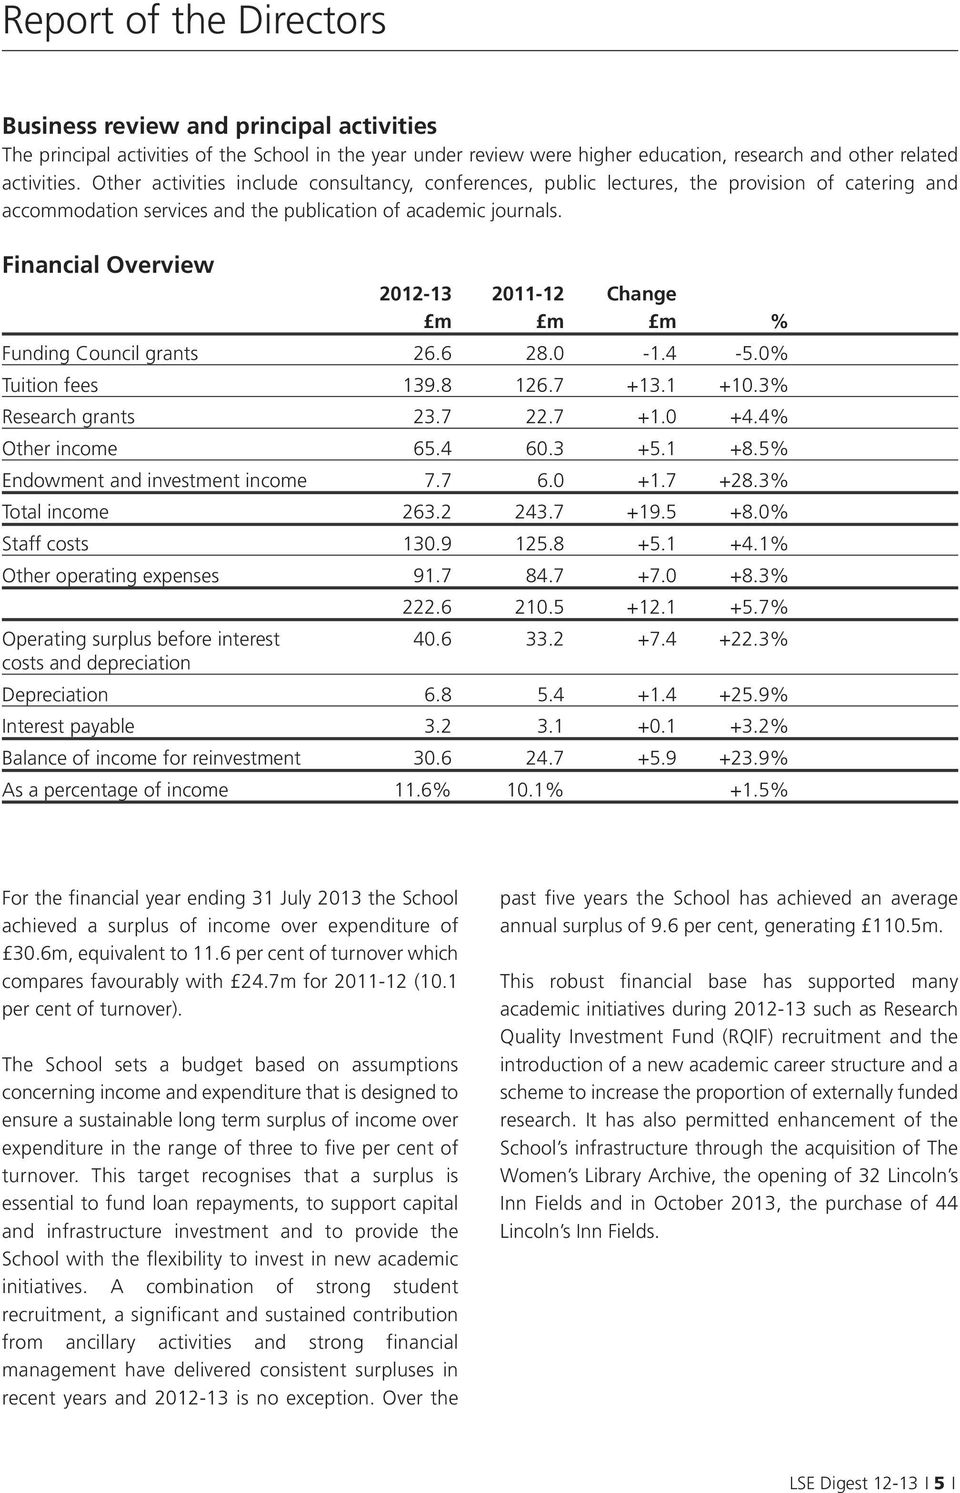 Financial Overview 2012-13 2011-12 Change m m m % Funding Council grants 26.6 28.0-1.4-5.0% Tuition fees 139.8 126.7 +13.1 +10.3% Research grants 23.7 22.7 +1.0 +4.4% Other income 65.4 60.3 +5.1 +8.